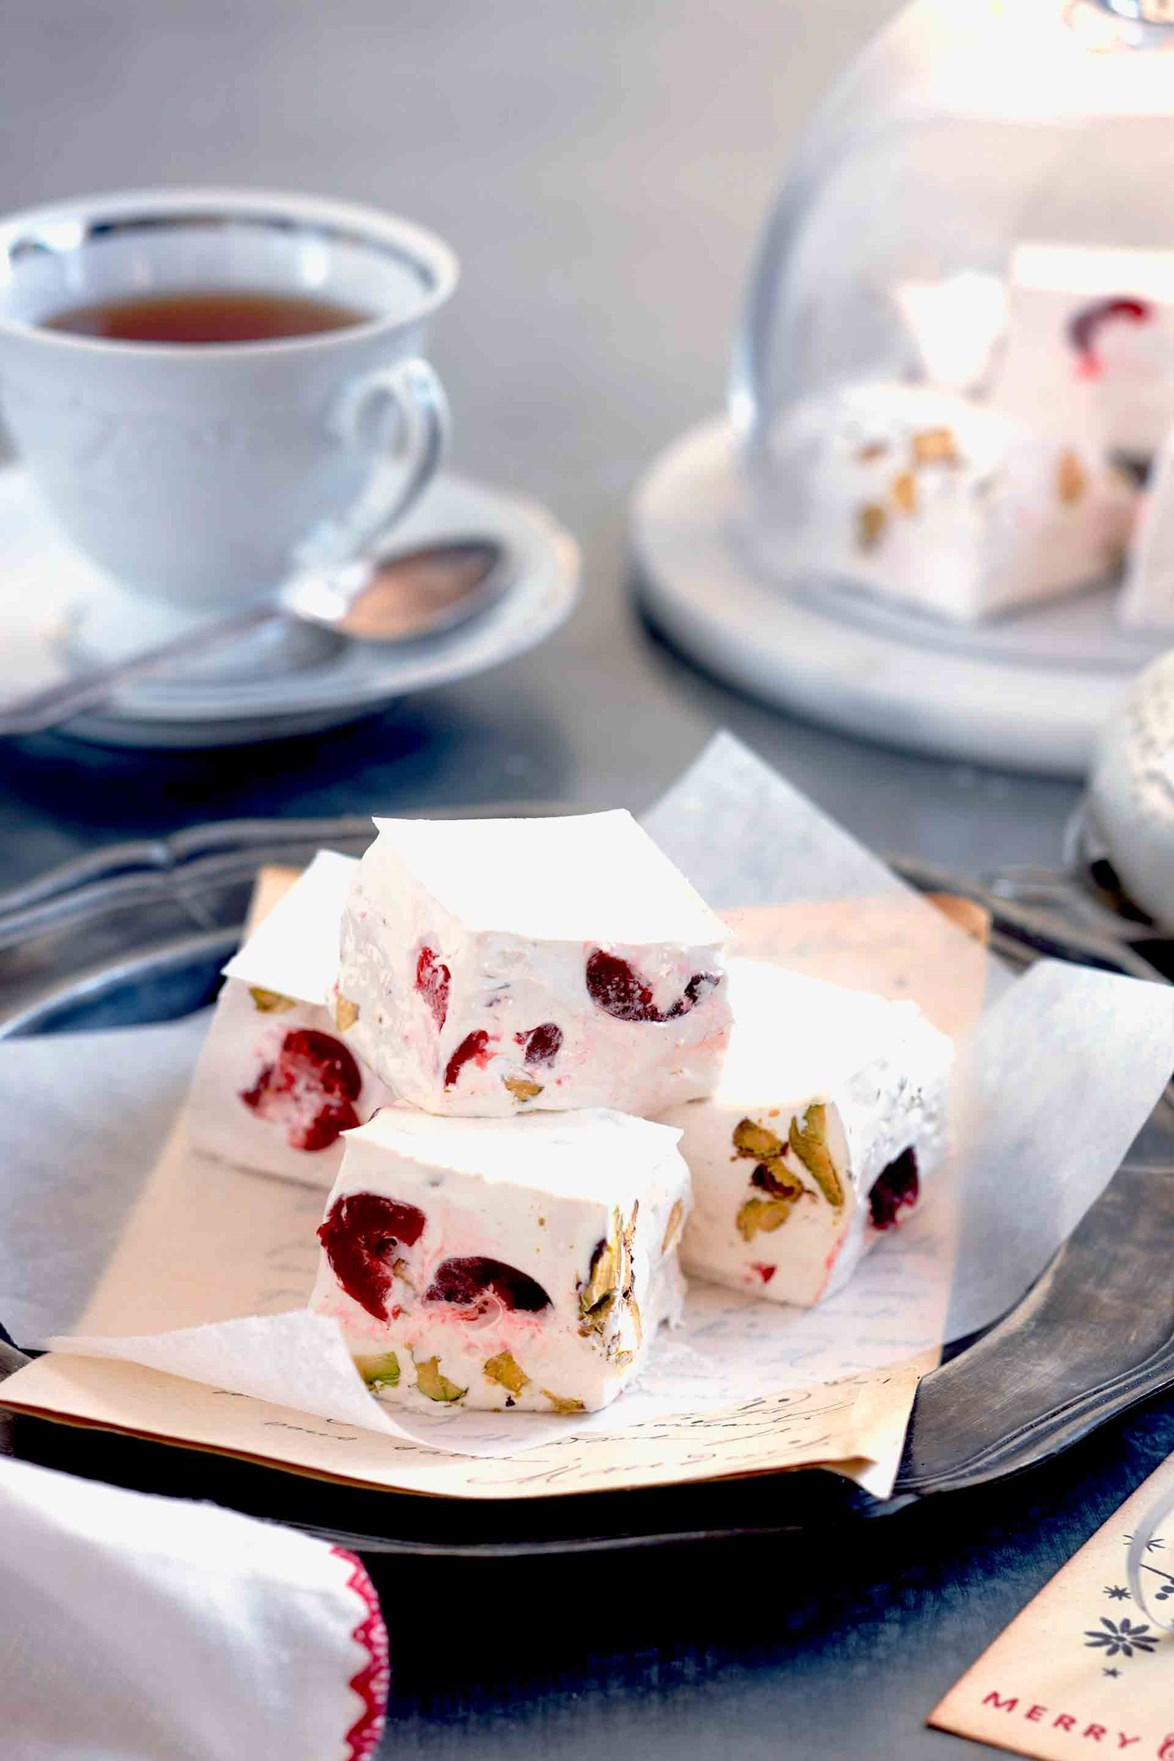 "**[Nougat squares with cherries and pistachios](https://www.homestolove.com.au/nougat-squares-8856|target=""_blank"")** Nougat is a popular [Christmas dessert](https://www.homestolove.com.au/australian-christmas-dessert-recipes-20808